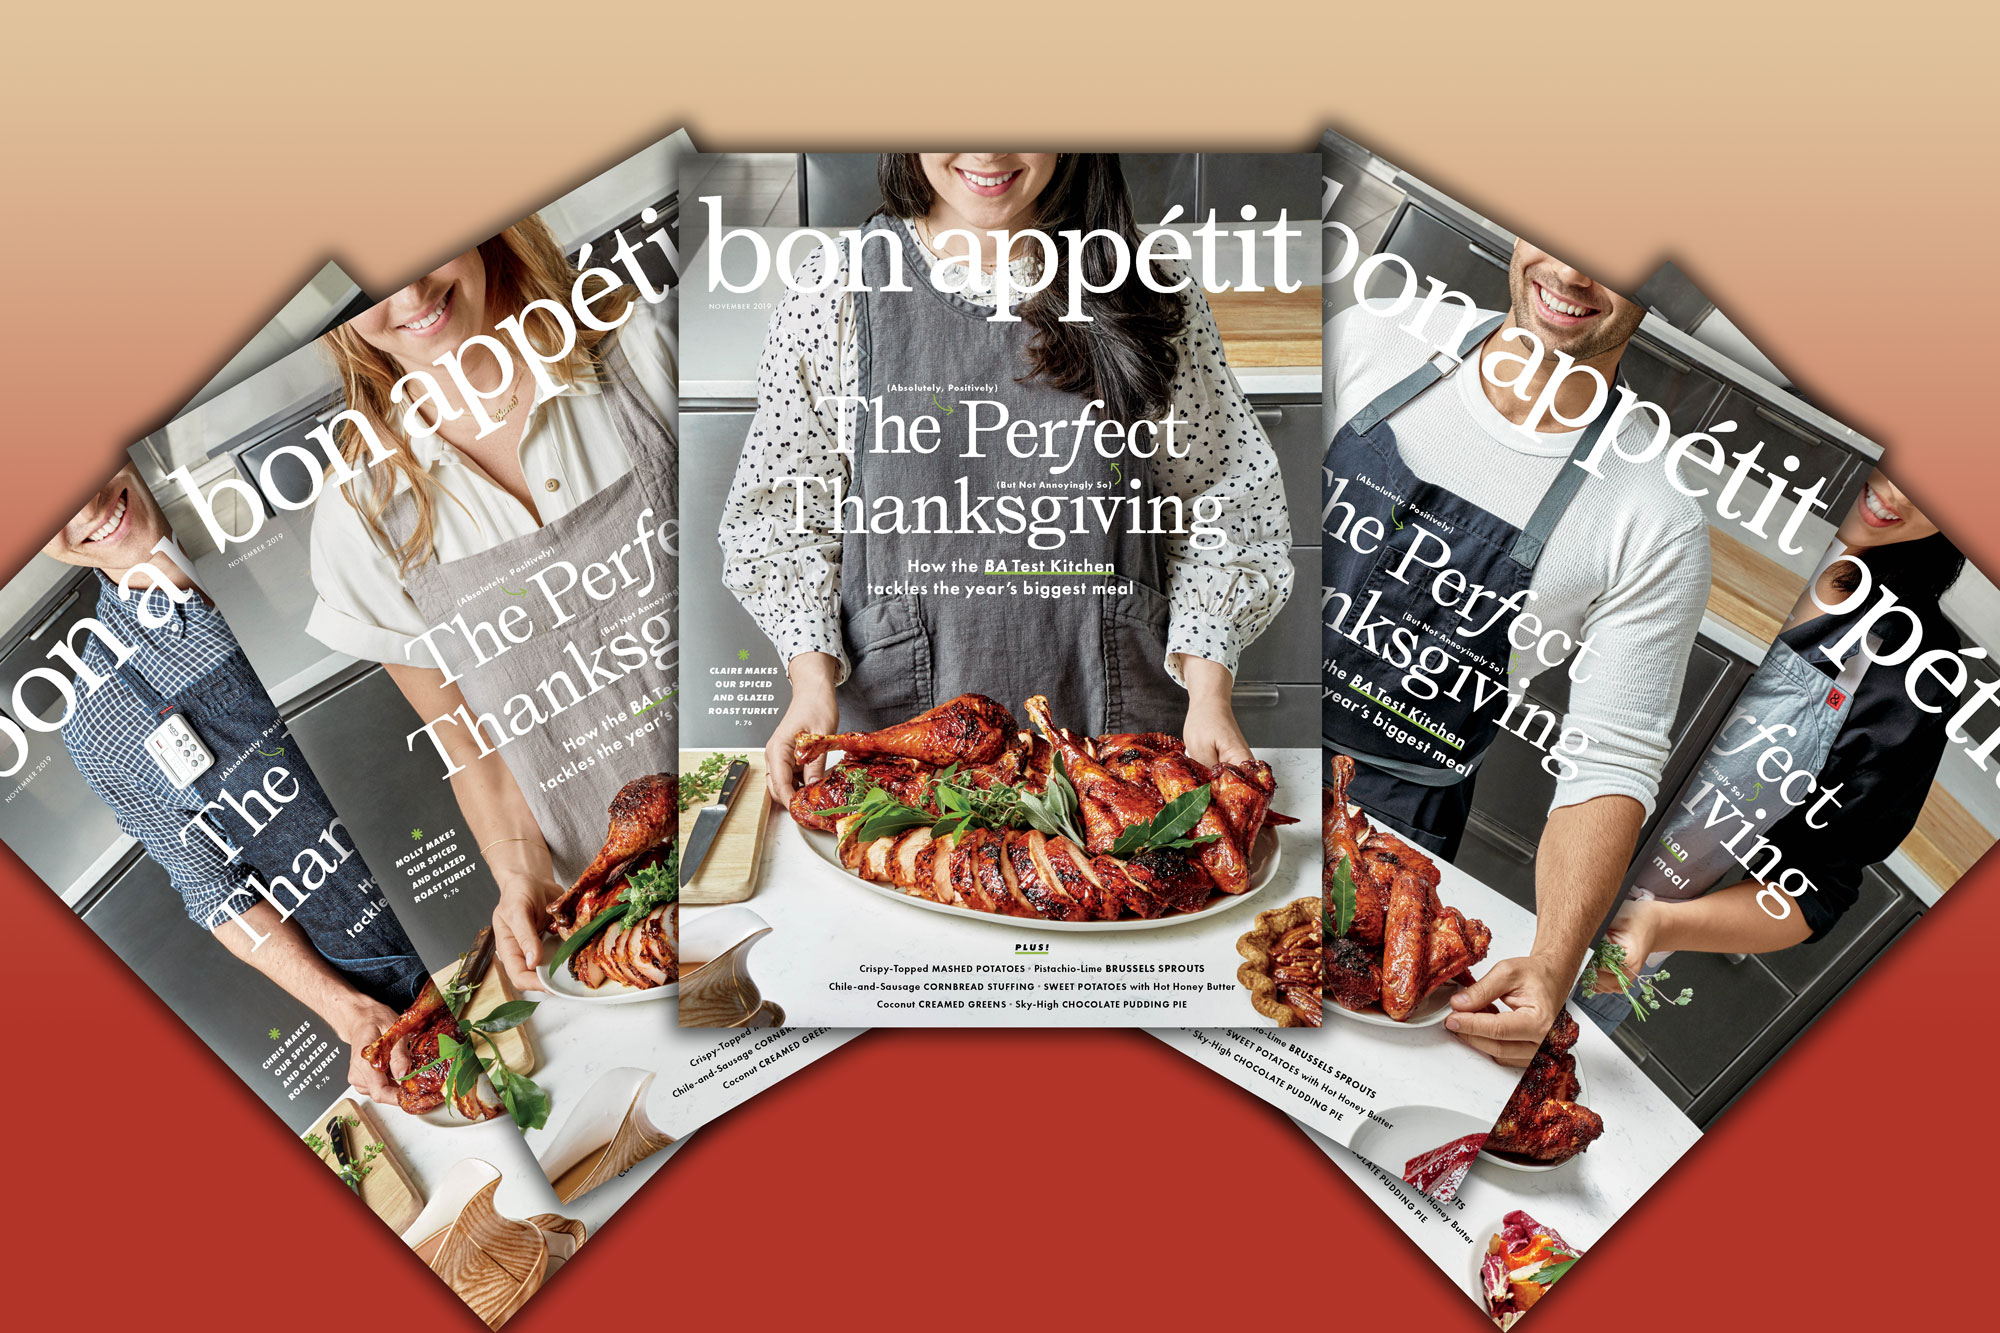 Bon Appétit is leveraging its low-key famous editors for a 'perfect' Thanksgiving video series